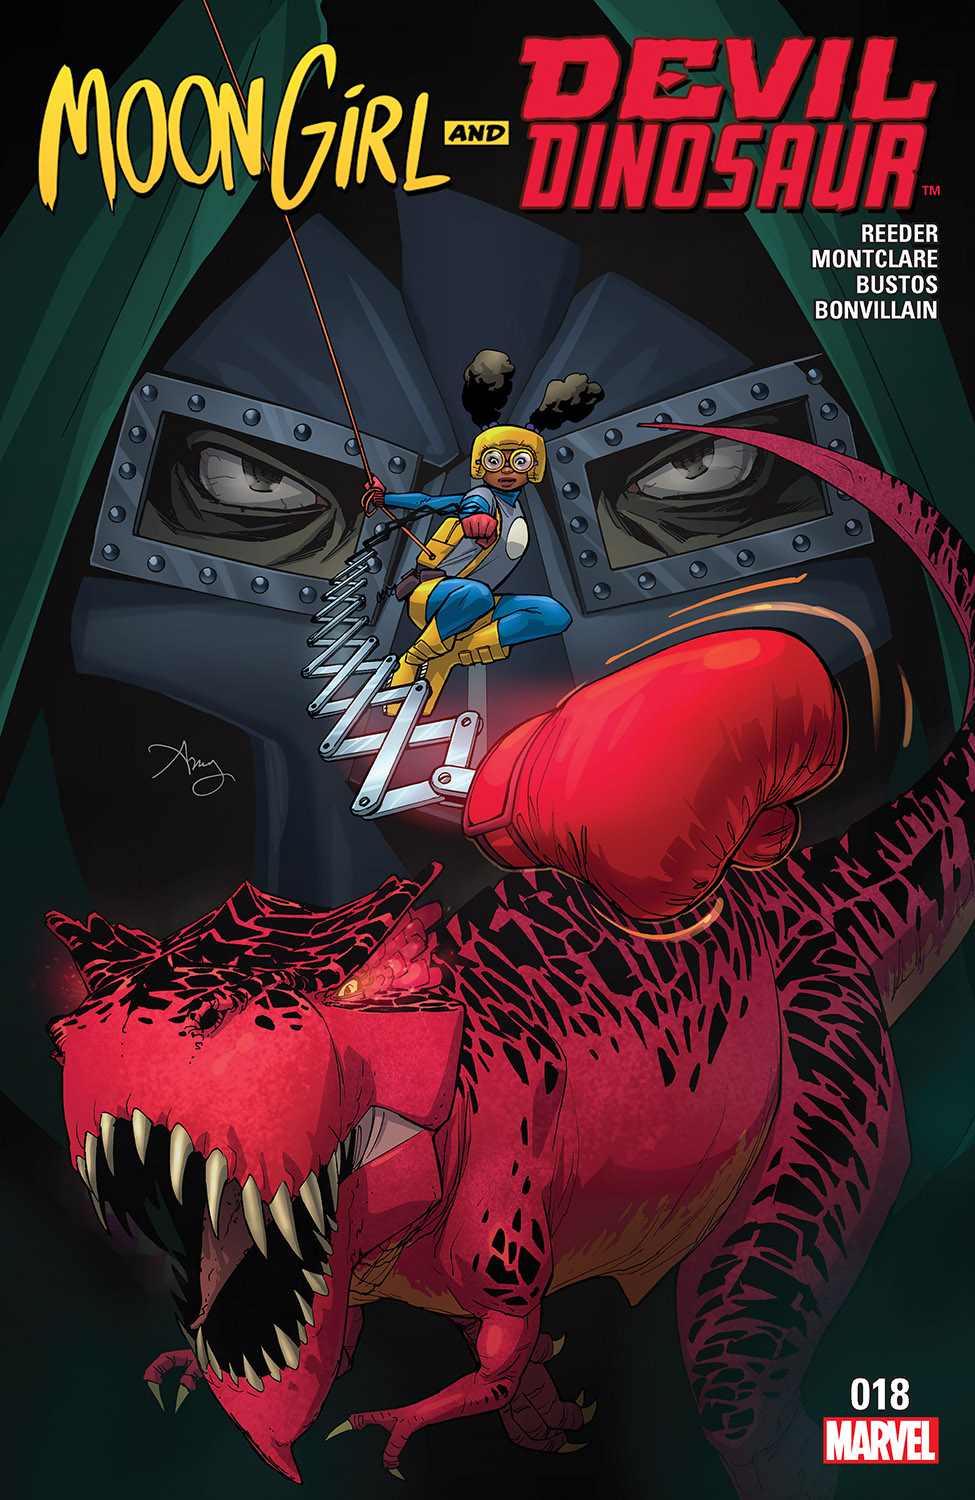 Moon Girl and Devil Dinosaur (2015) #18